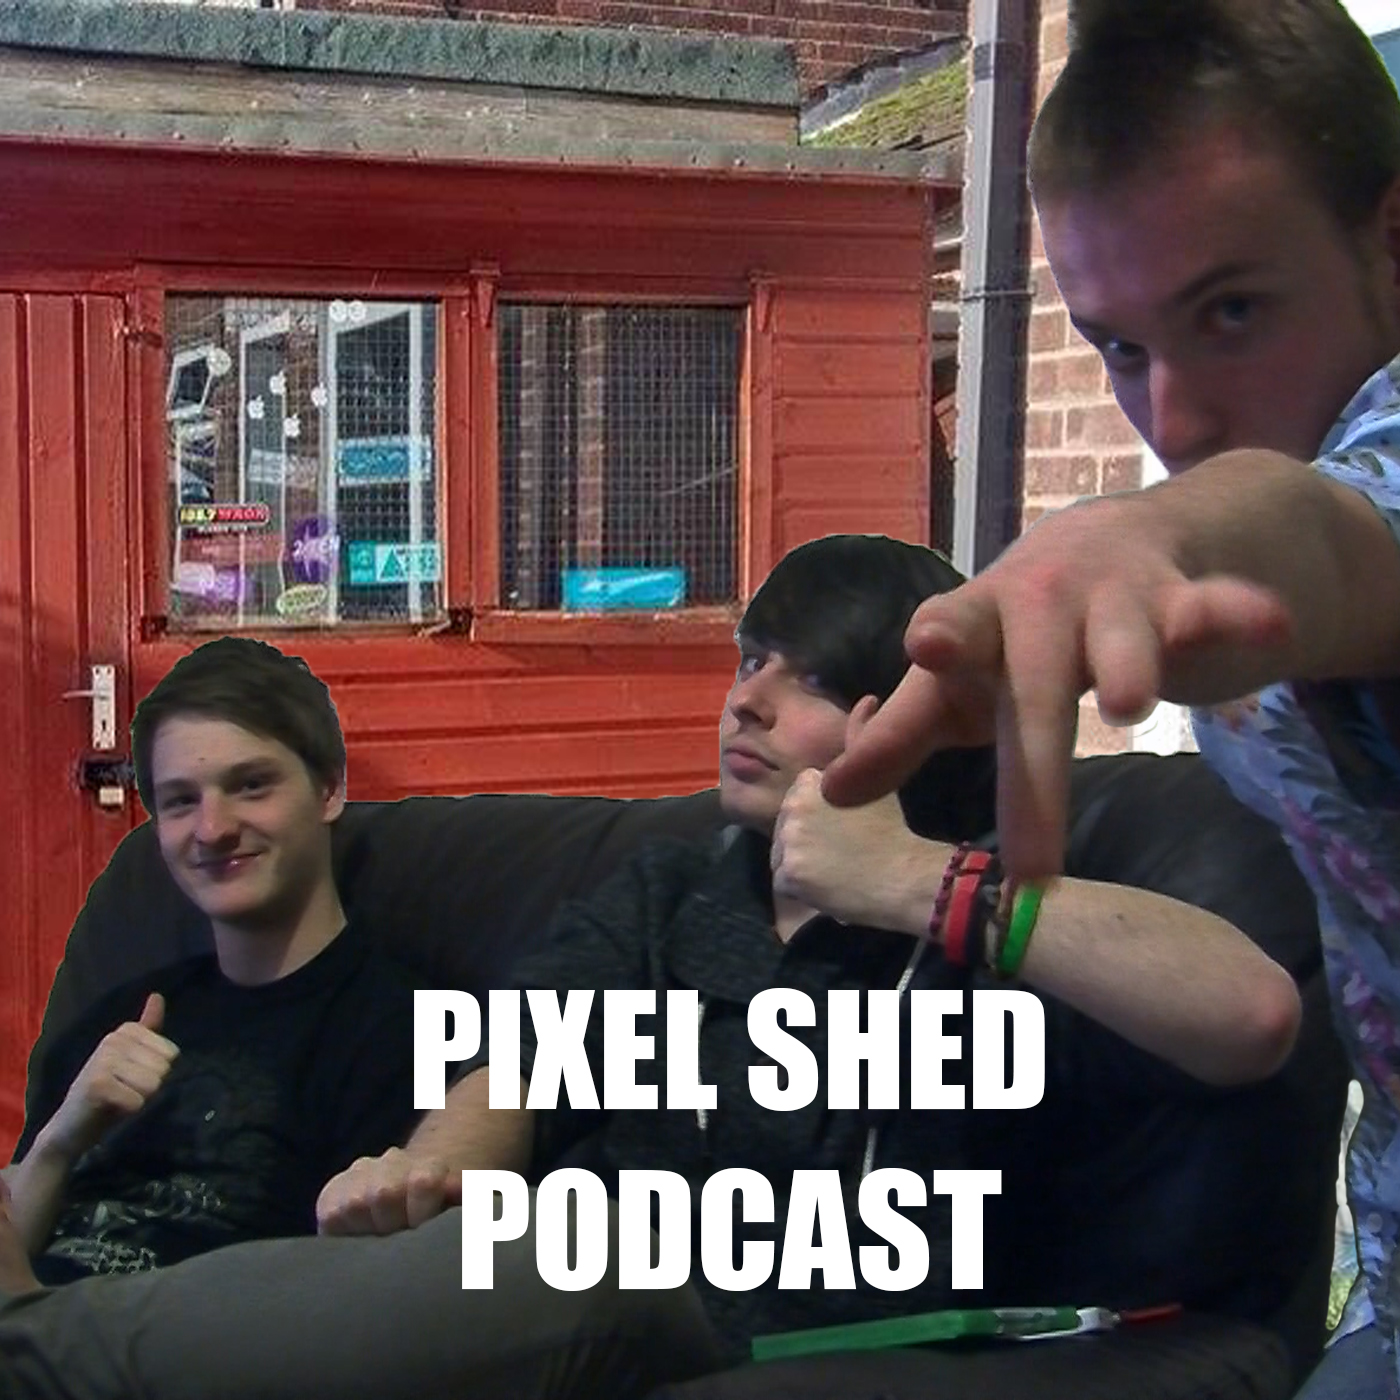 Pixel Shed Podcast